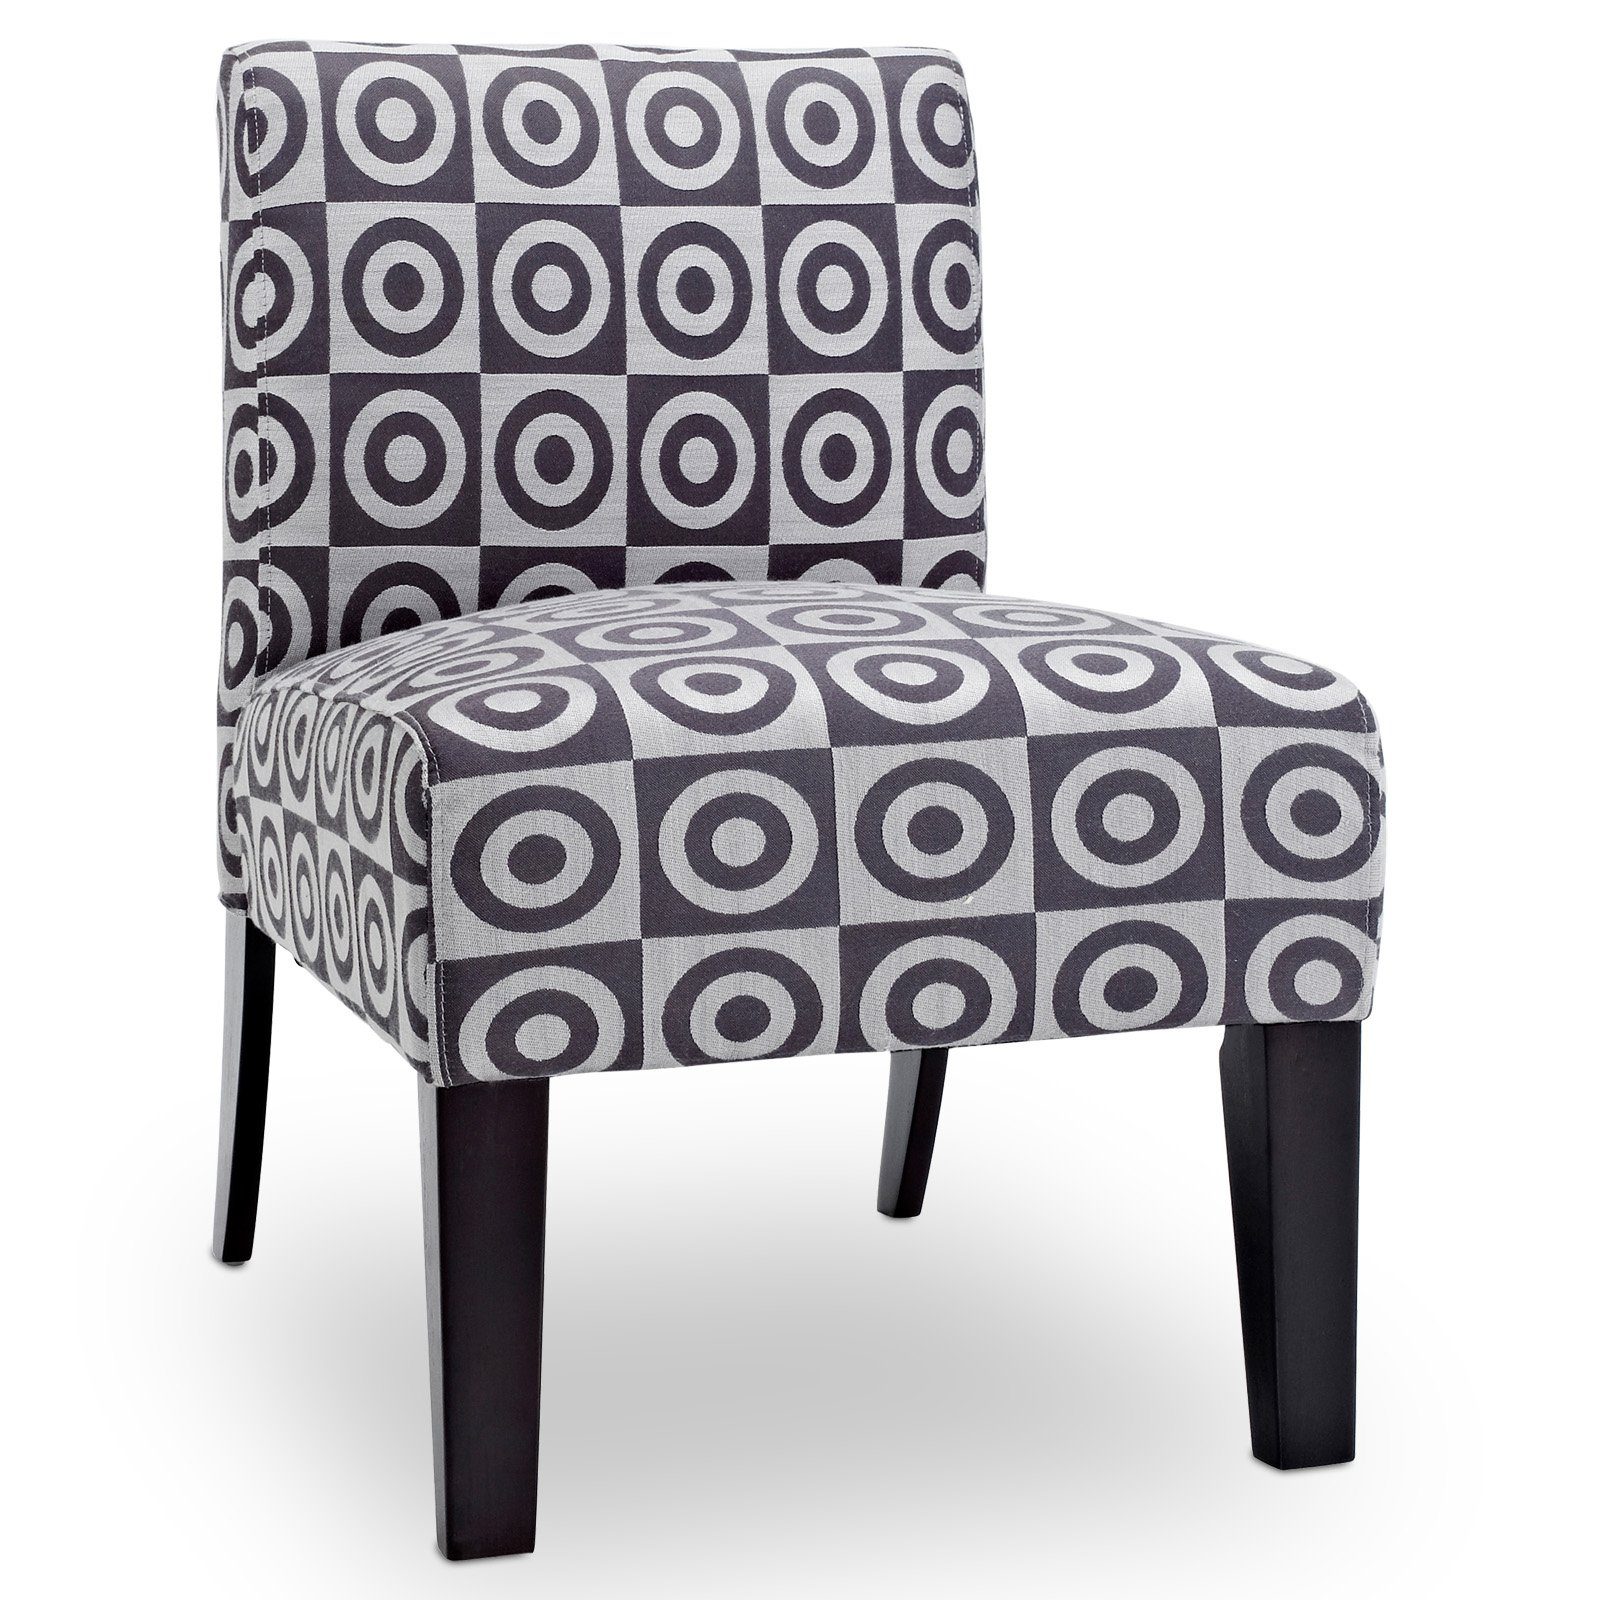 Allegro Accent Chair by Dwell Home Inc